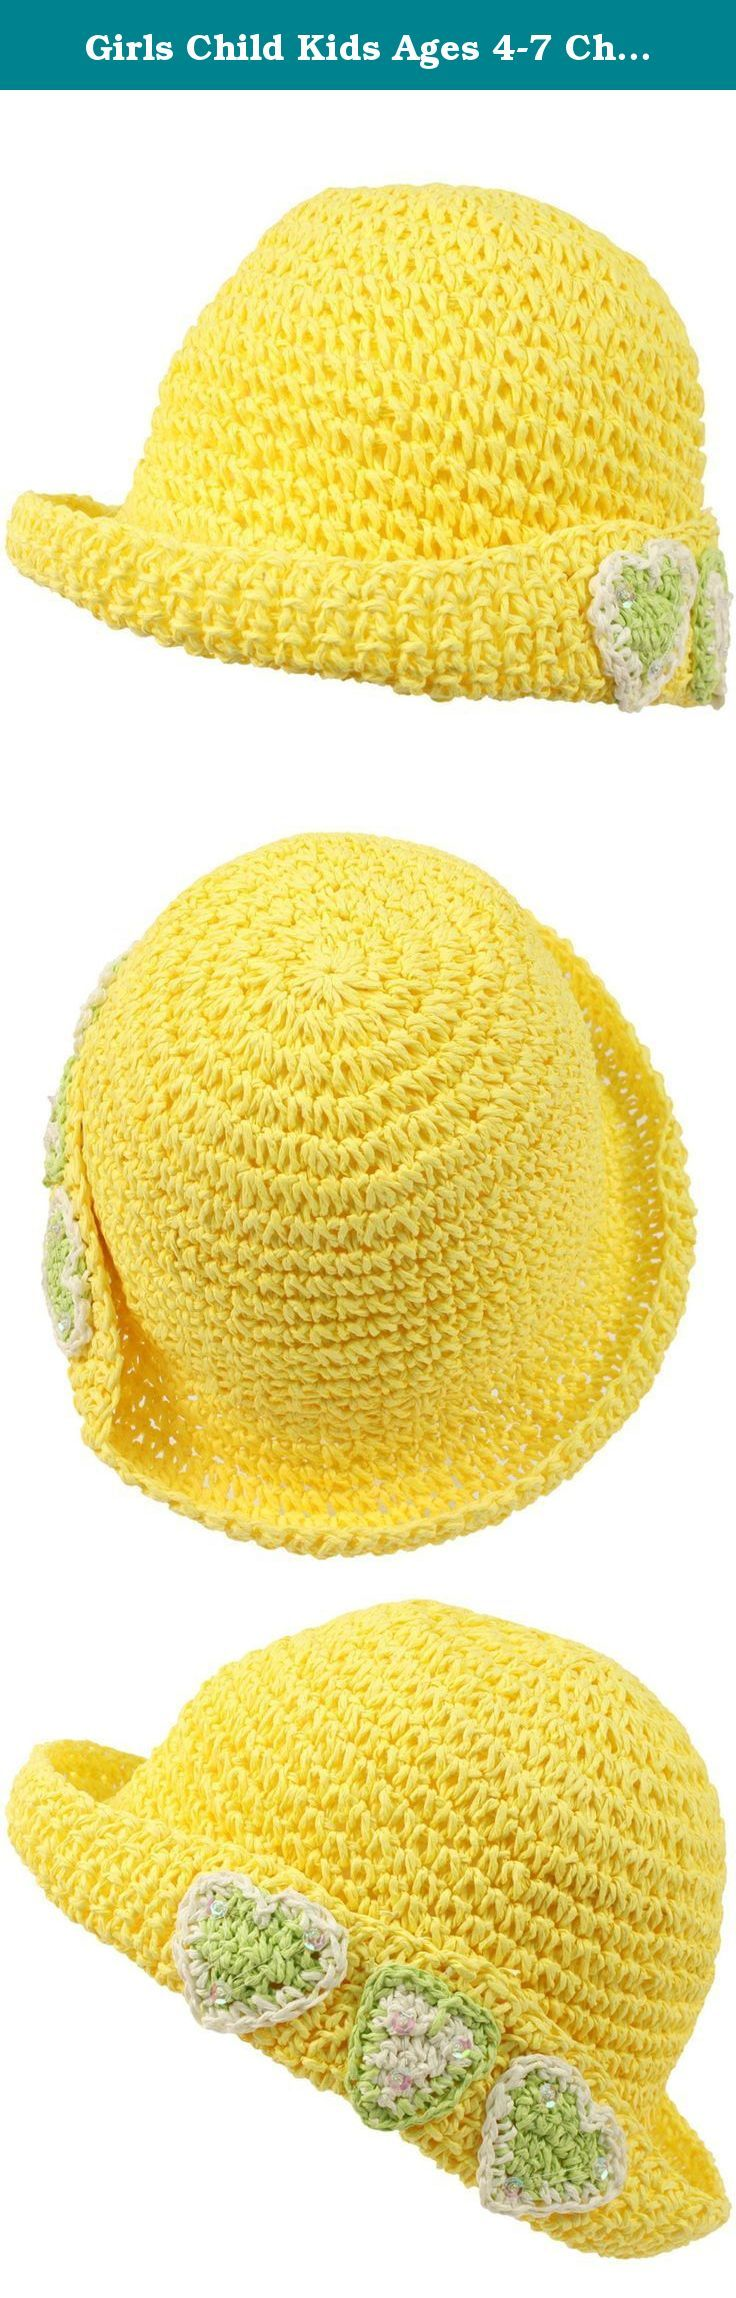 Girls Child Kids Ages 4-7 Child Summer Sun Bucket Crusher Hat Cap Yellow 53cm. Just like mom! New Kids Girls Child Crushable Packable Summer Spring Bucket Crusher Sun Hat Cap with 3 cute hearts with sequins. Crushable, Packable, Fold it up & Ready to Go! Interior sweat band. Vented and Airy. Perfect for hot weather to keep harmful sun and UV rays out of their face. Or even a formal affair like weddings, formals, Kentucky derby, how about a picnic, a costume for a play, performances, a day…